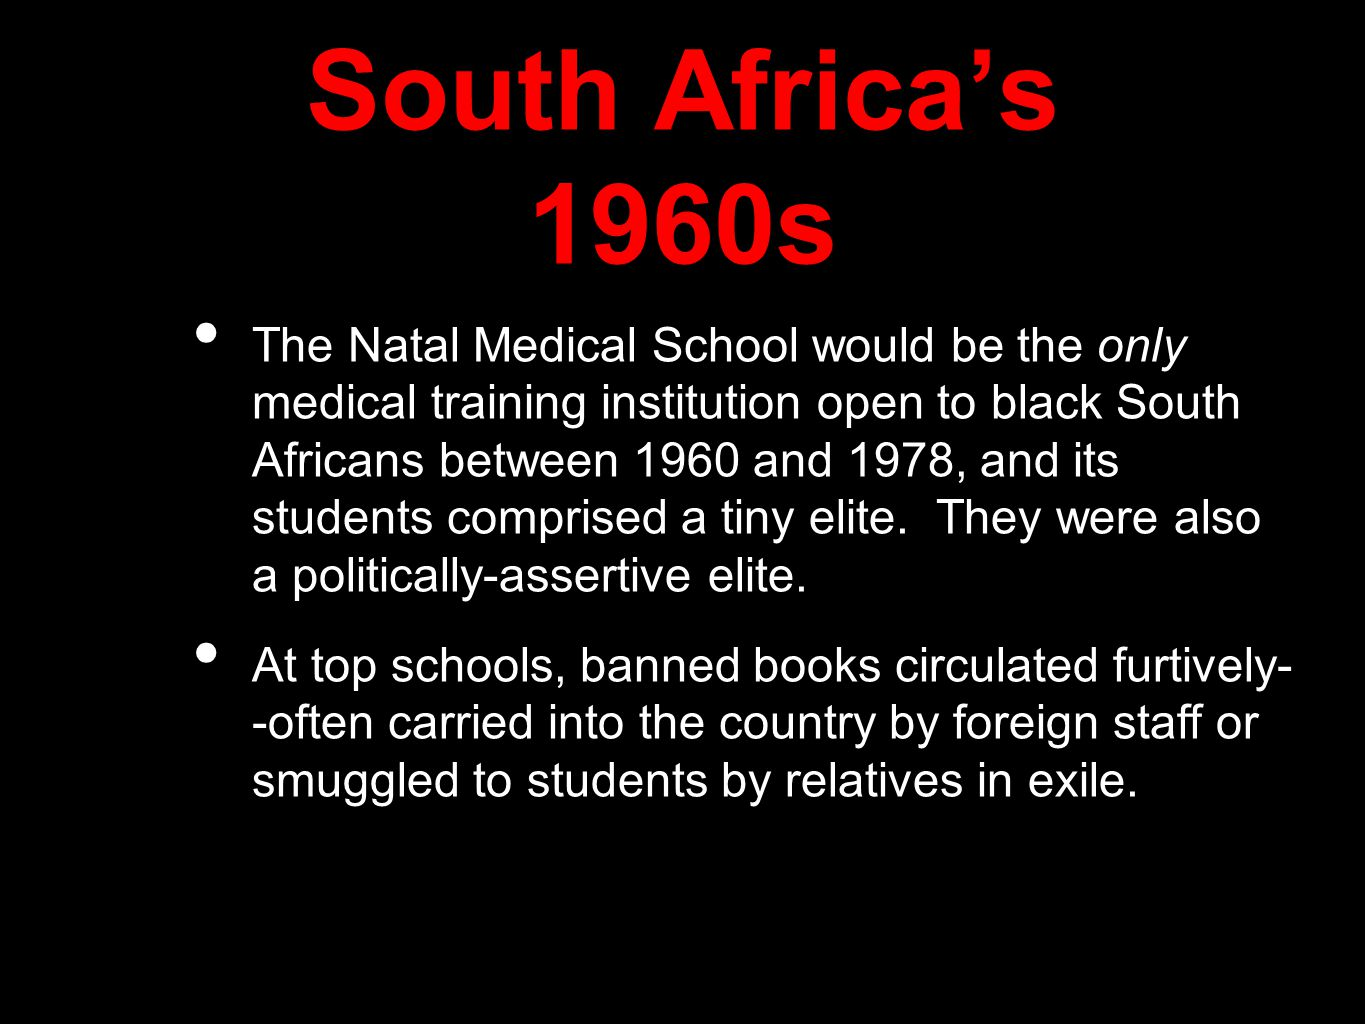 South Africa's 1960s The Natal Medical School would be the only medical training institution open to black South Africans between 1960 and 1978, and its students comprised a tiny elite.